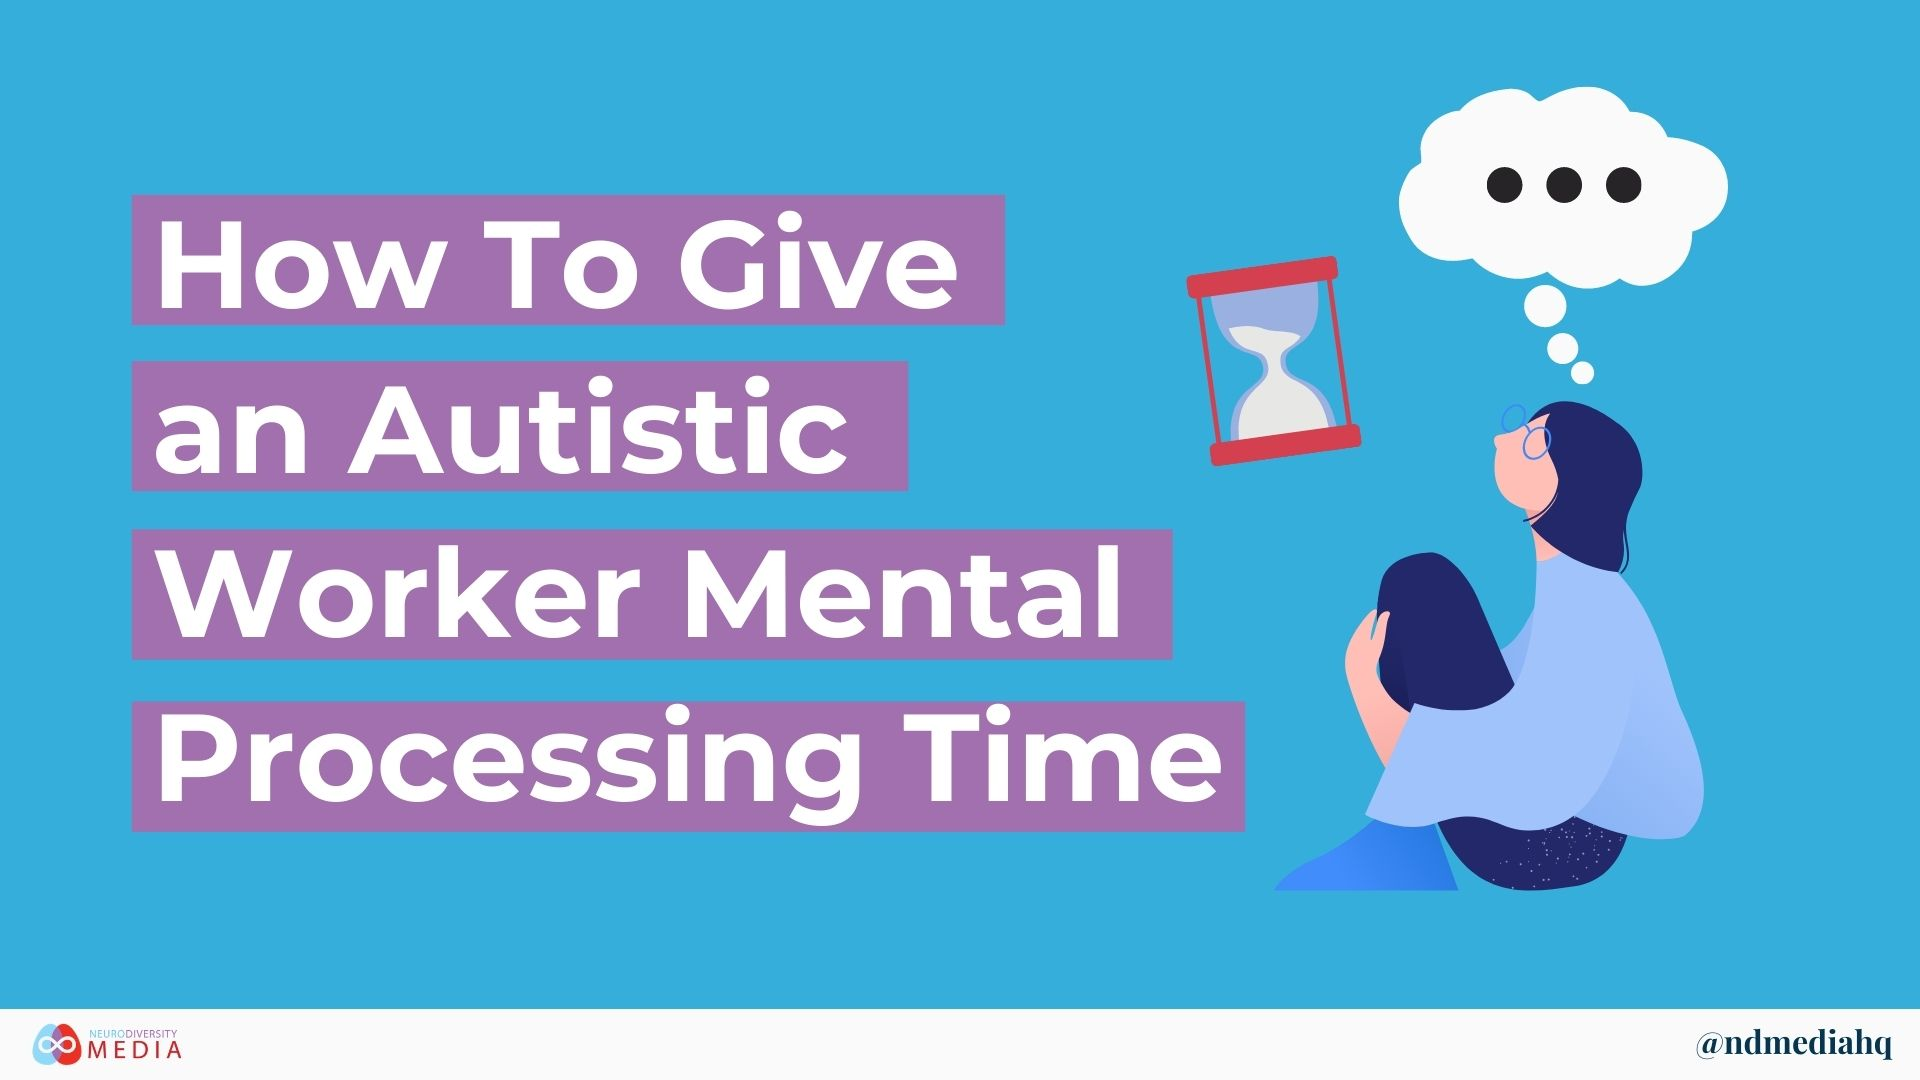 How to Give an Autistic Worker Mental Processing Time